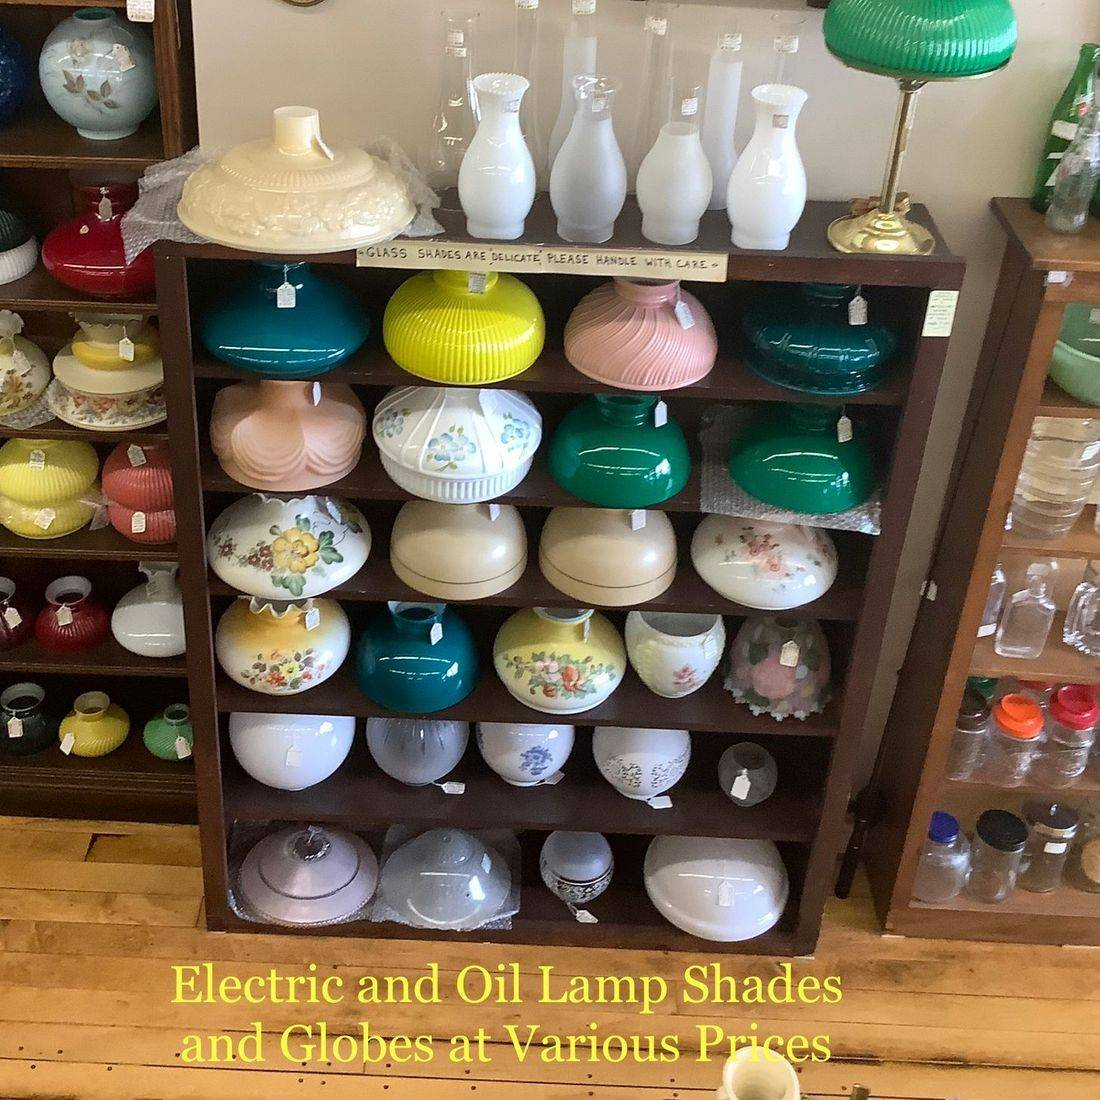 Electric and Oil Lamp Shades & Globes at Various Prices